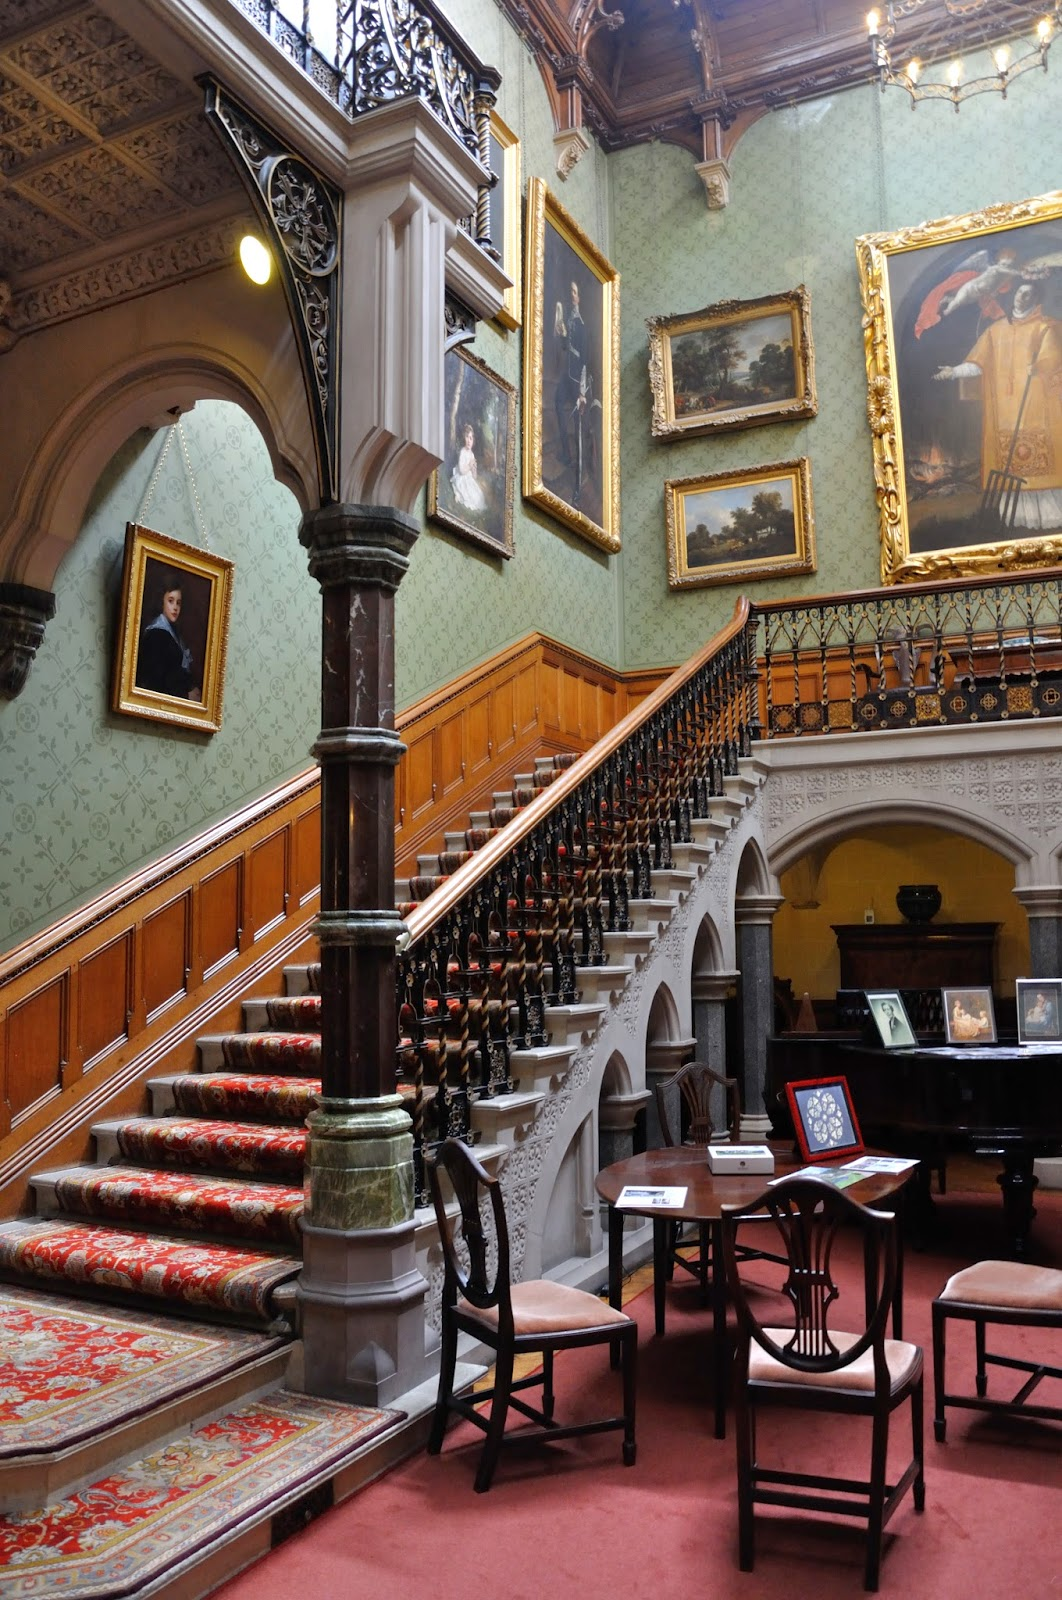 Main staircase at Tyntesfield